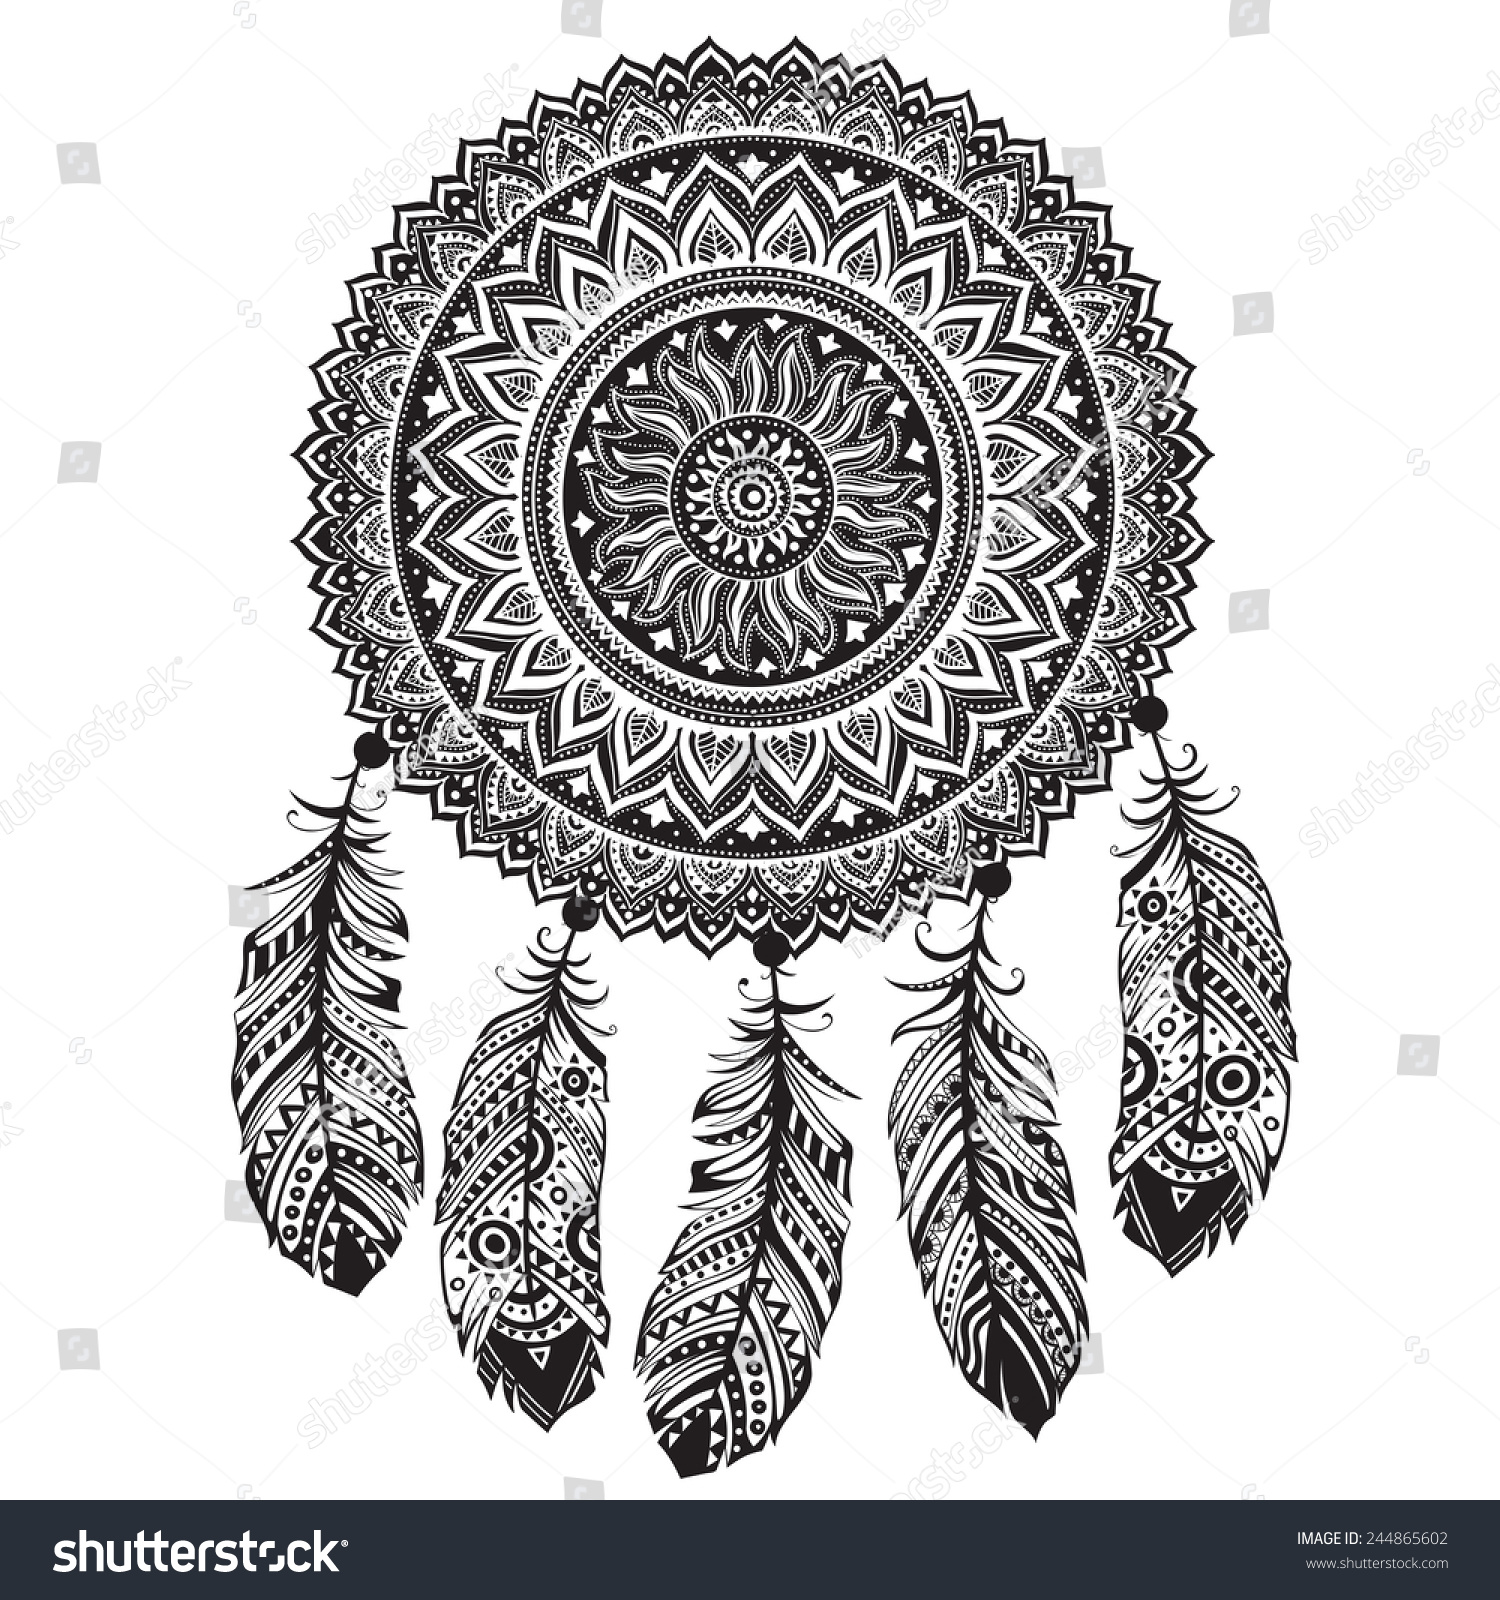 Ethnic American Indian Dream Catcher Can Stock Illustration